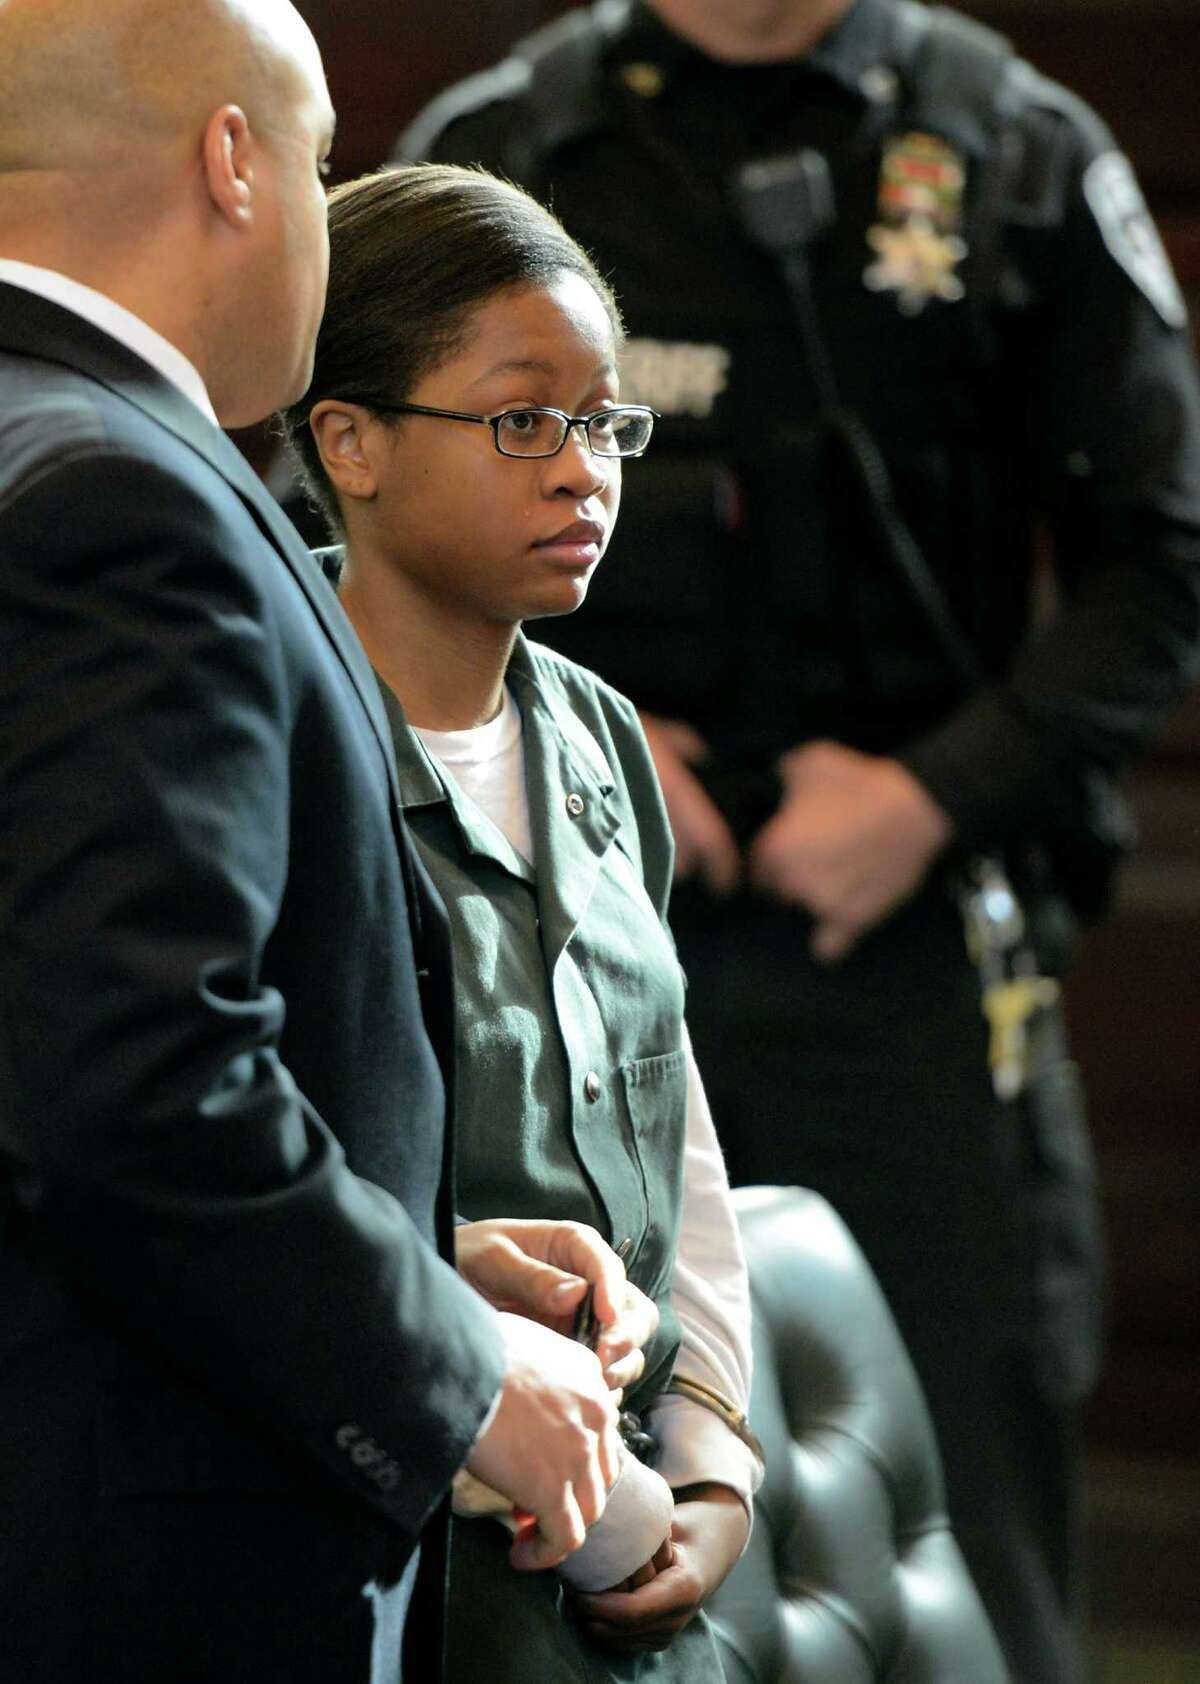 Trinity Copeland, represented by attorney Matthew Smalls, left was arraigned on 2nd degree murder charges in front of Judge Andrew Ceresia at the Rensselaer County Courthouse in Troy, N.Y. Dec. 20, 2012. (Skip Dickstein/Times Union)